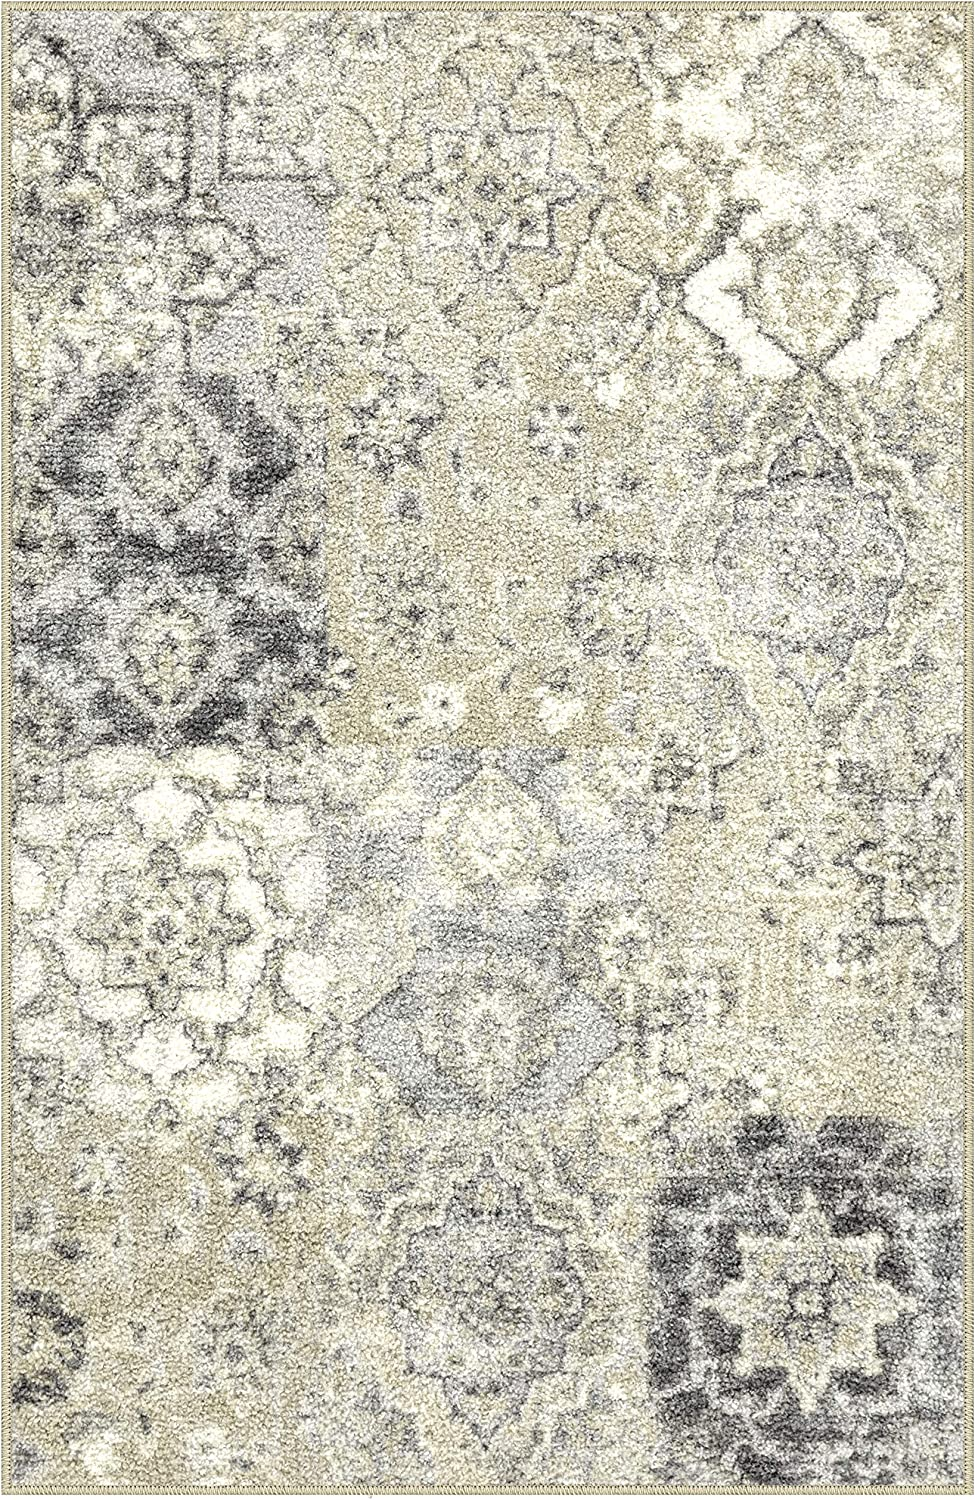 Maples Rugs Kitchen Rugs - Vintage Patchwork 2'6 x 3'10 Non Skid Washable Throw Rugs [Made in USA] for Entryway and Bedroom, Grey